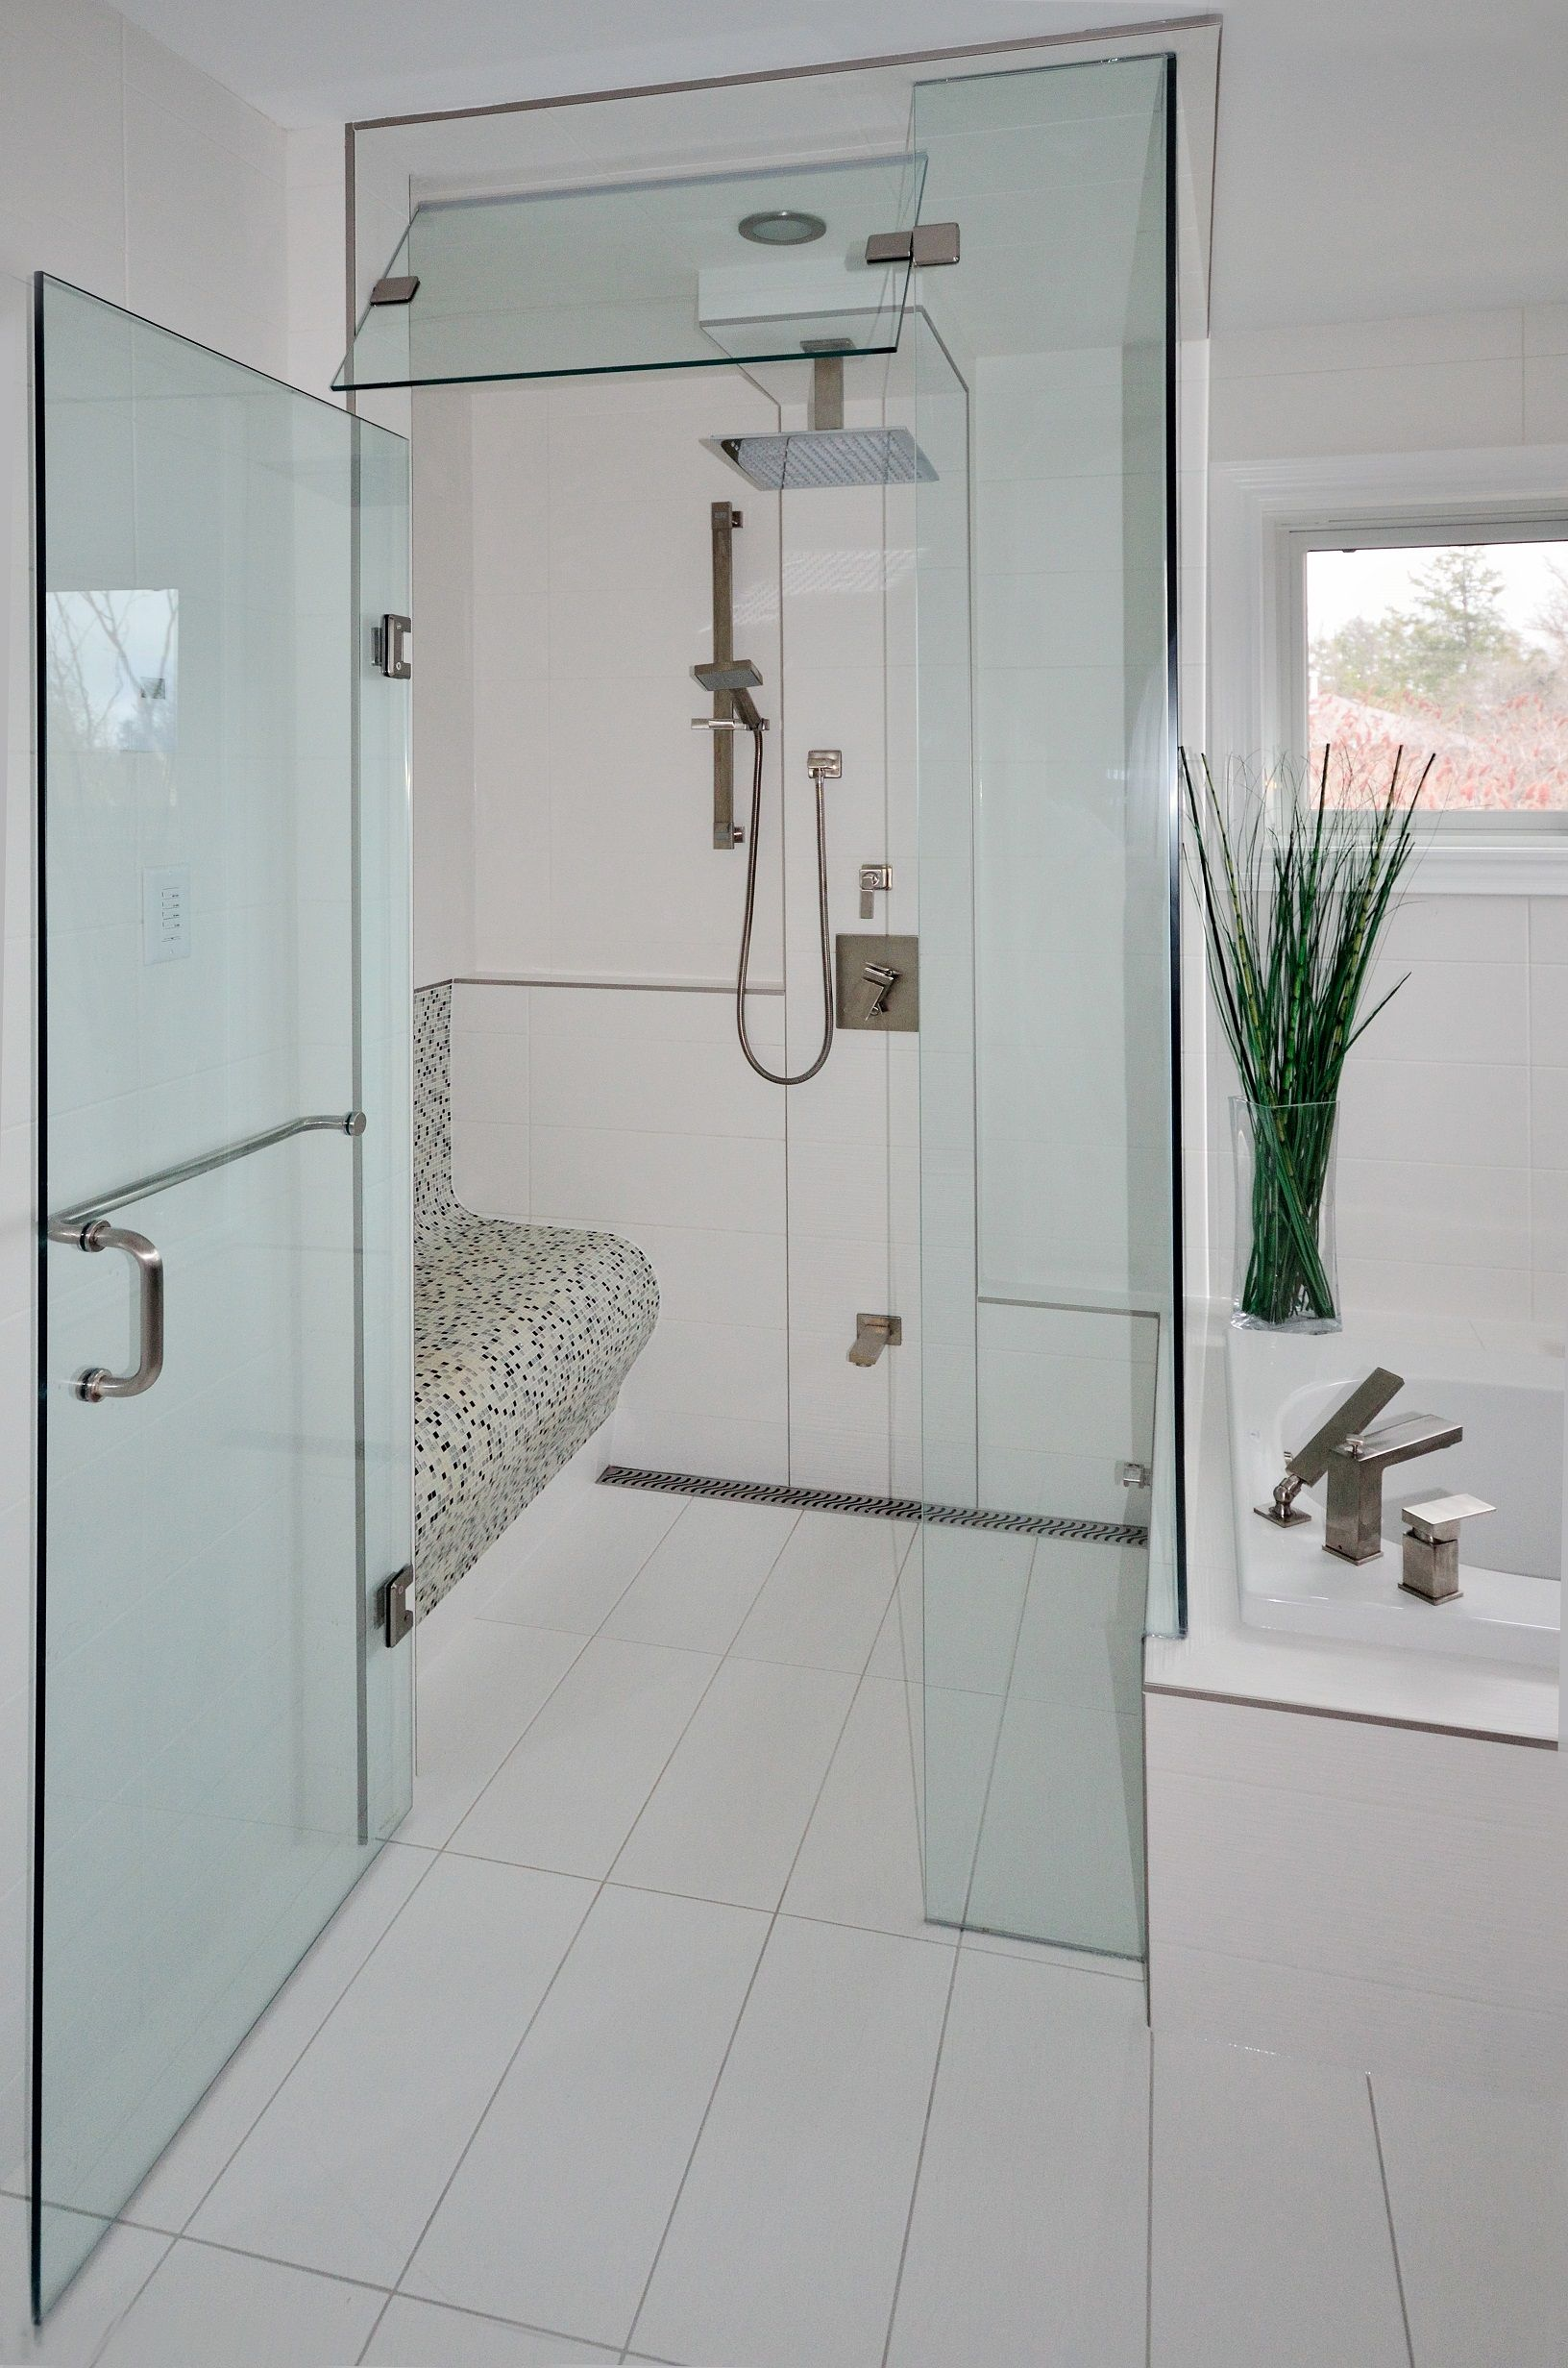 This shower is completely stepless! Allowing the floor